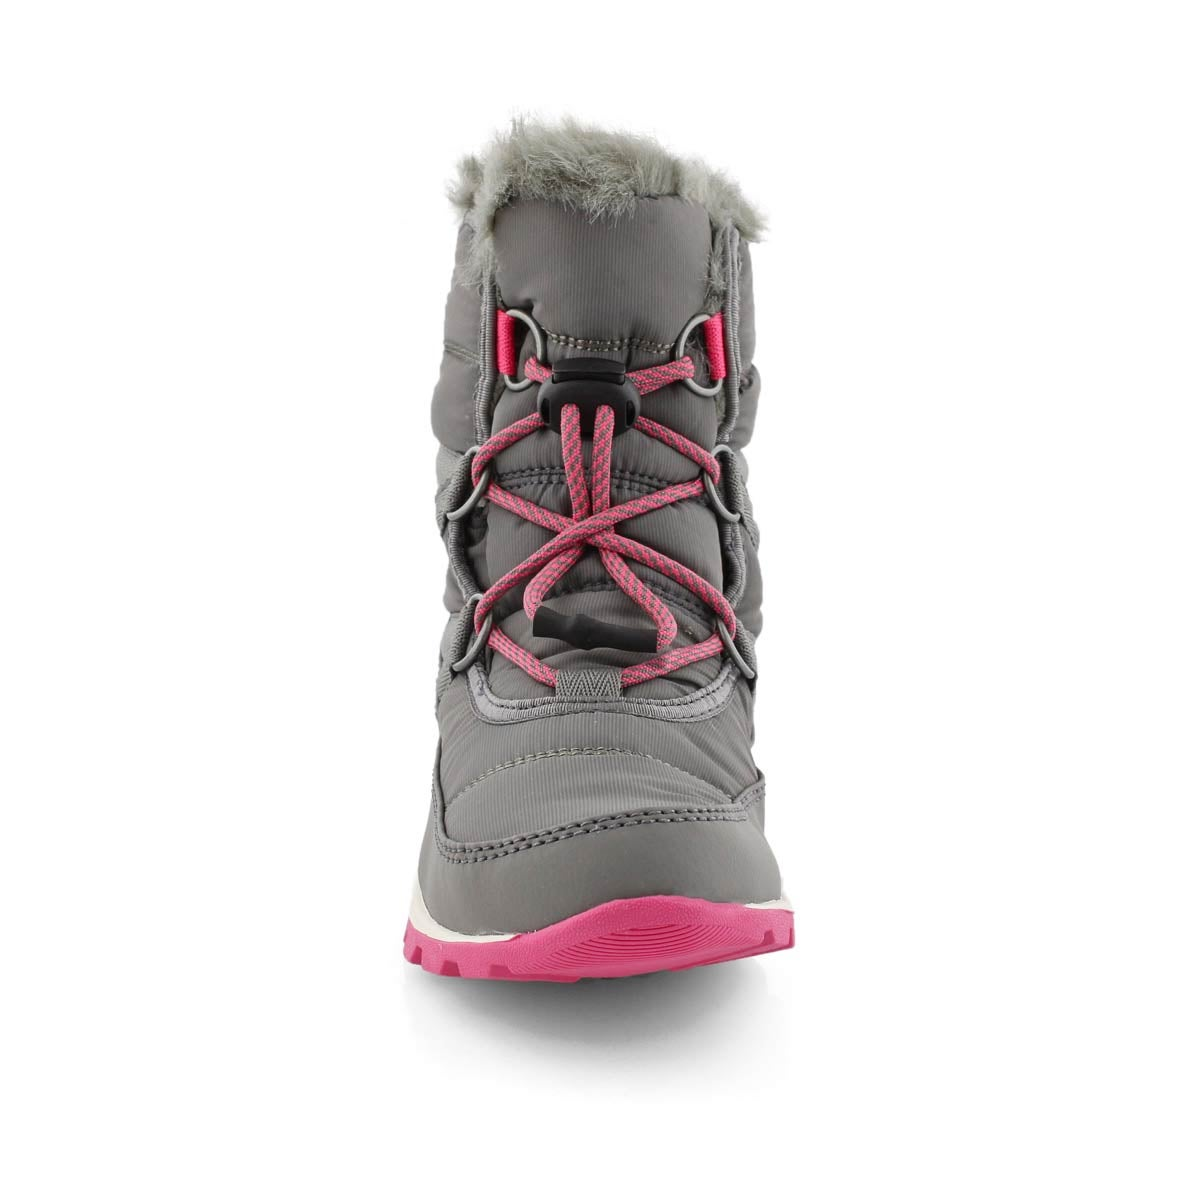 Grls Whitney Short Lace qry/pk snow boot